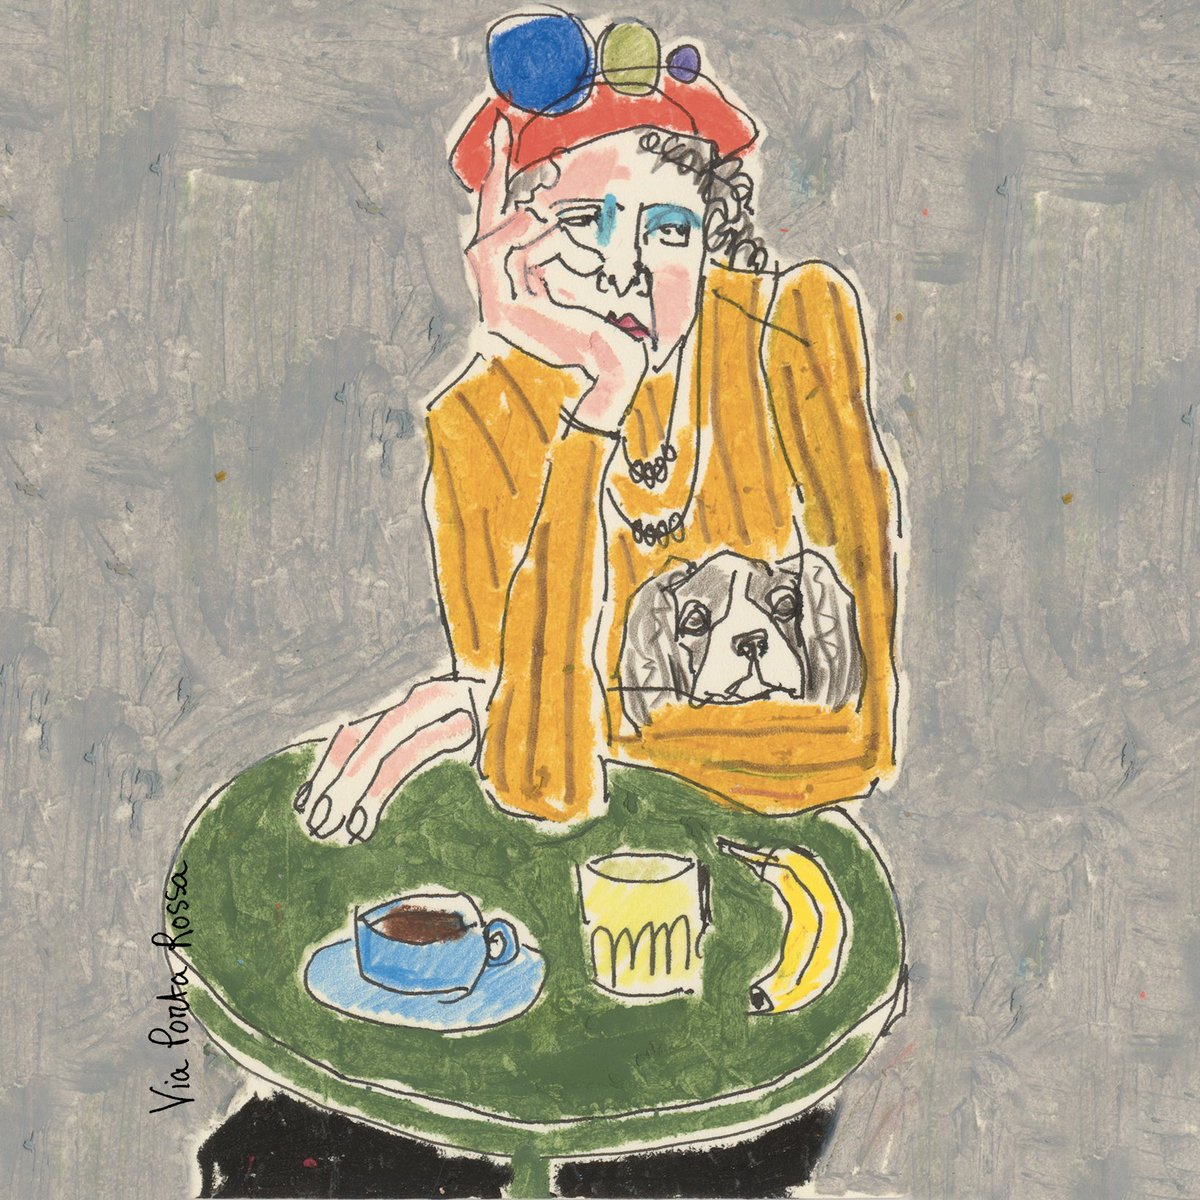 037b9fd49330 The London-based artist's illustrations are drawings of eccentric  characters of Florence that she made observing the streets of the city and  local ...